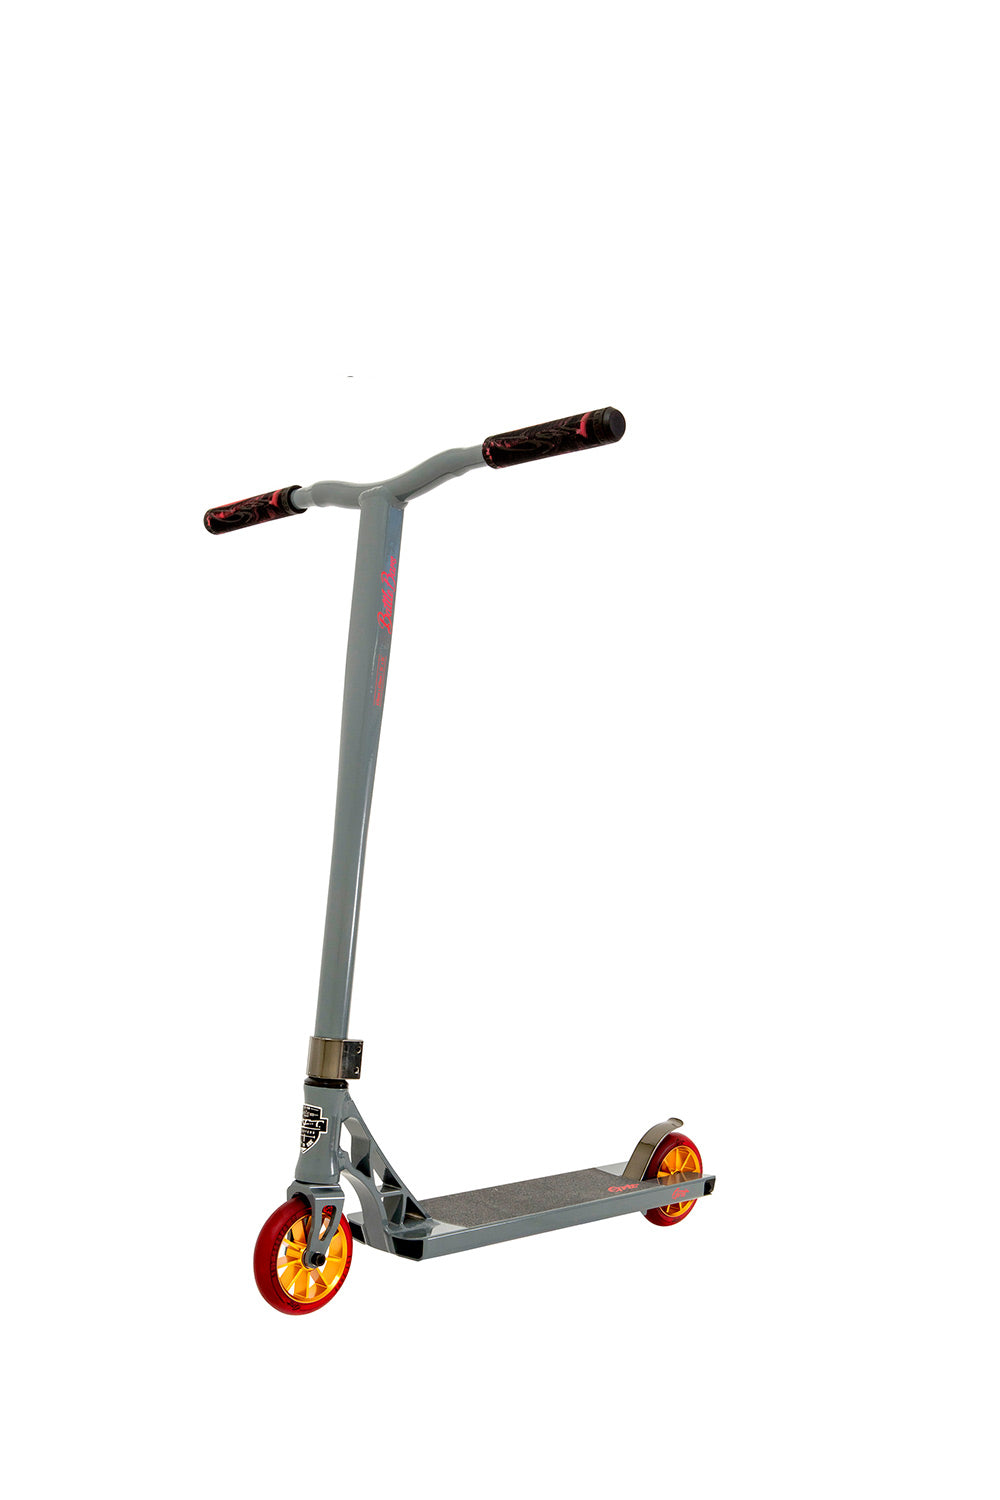 Grit Tremor Scooter